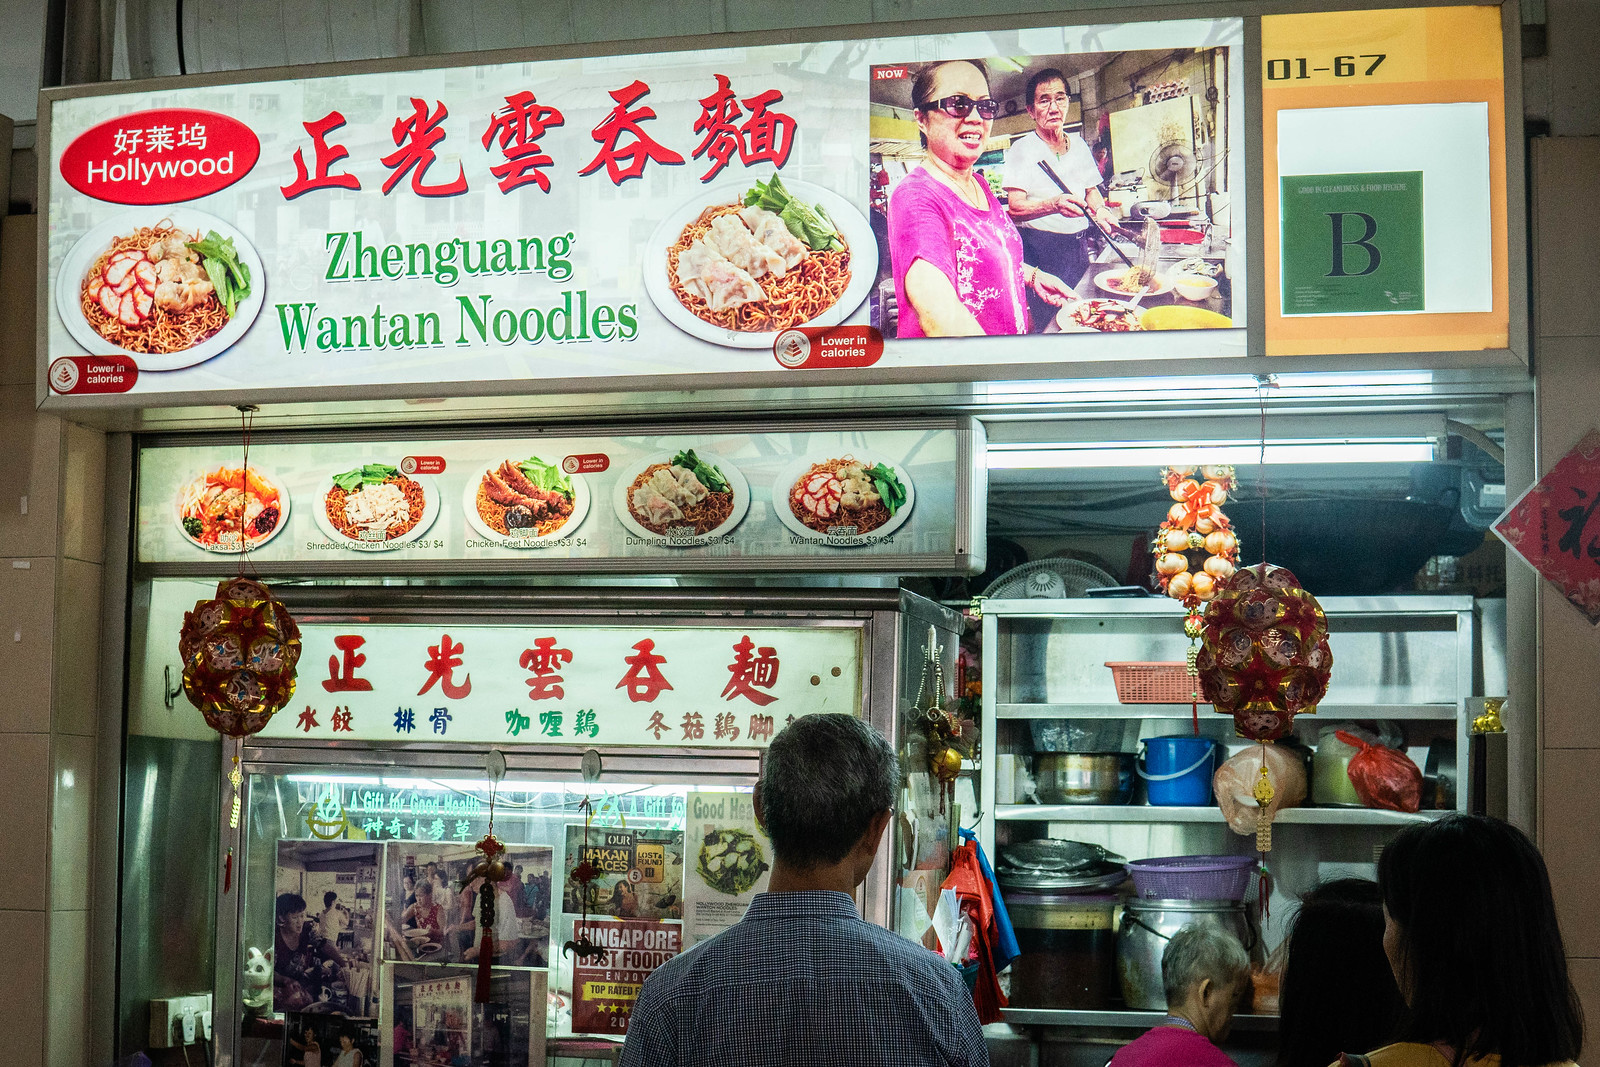 Store front of Zhenguang Wantan Noodles at Haig Road Market